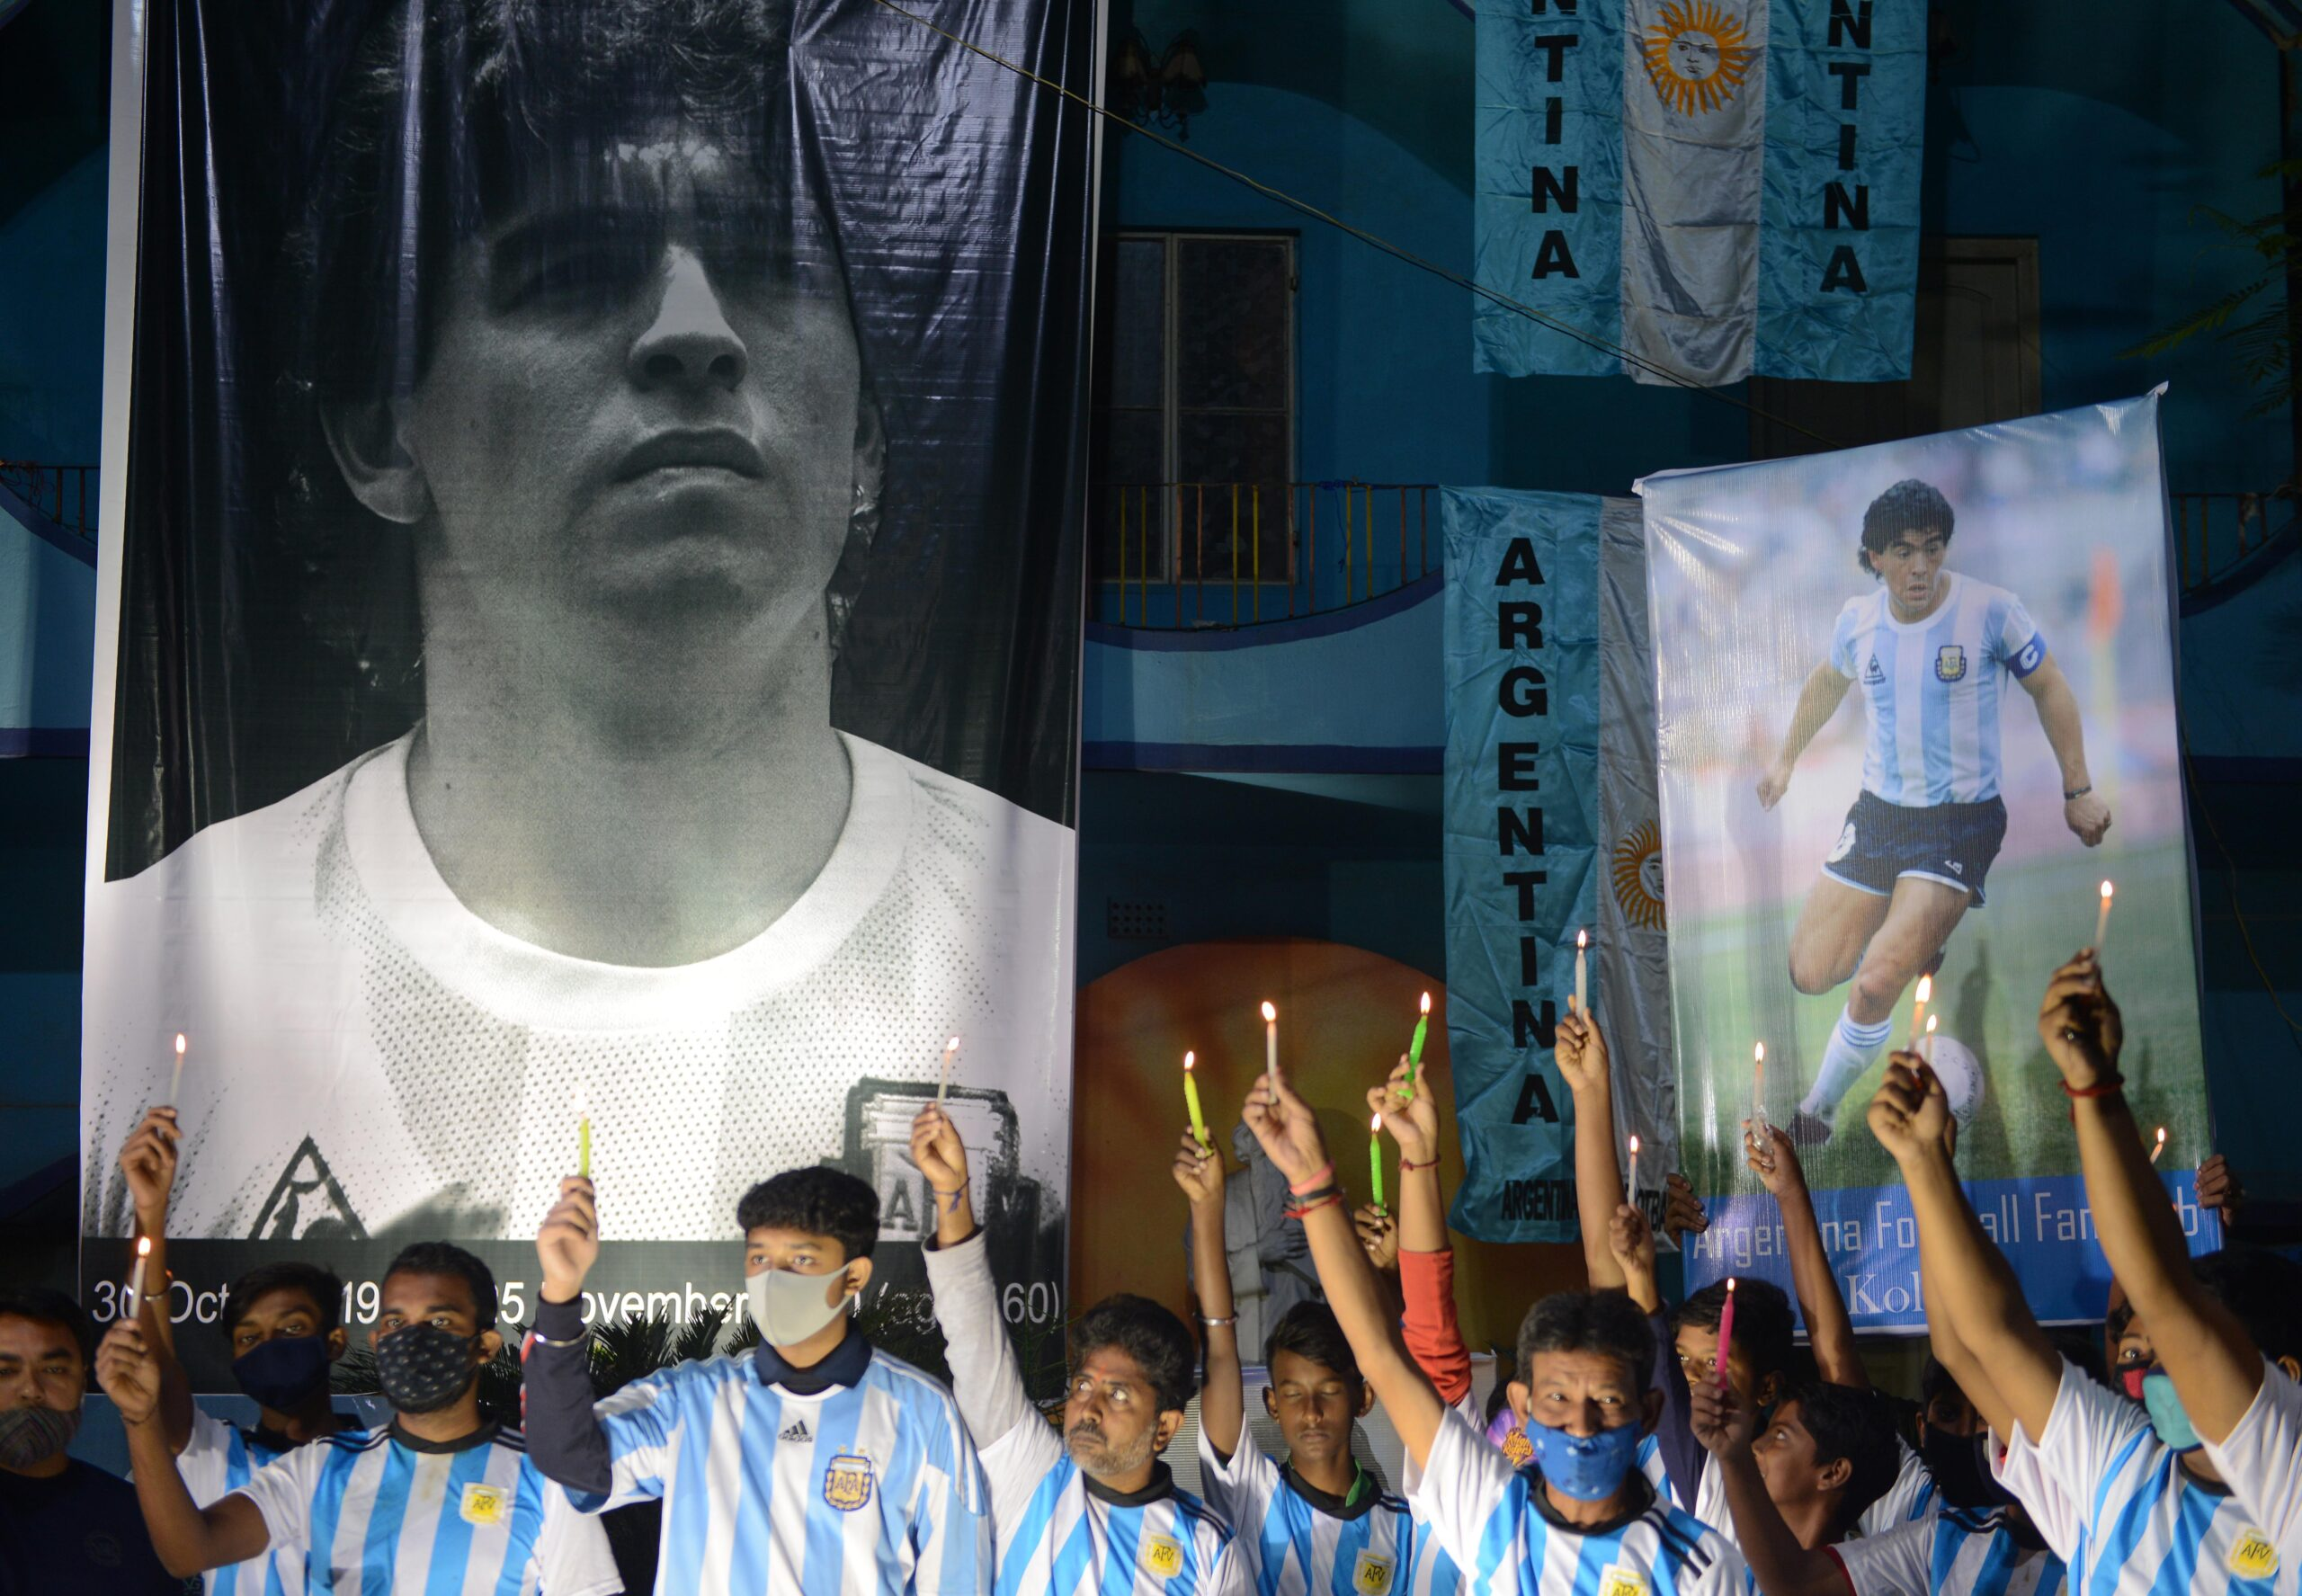 'Mecca of Indian Football' Mourns Maradona